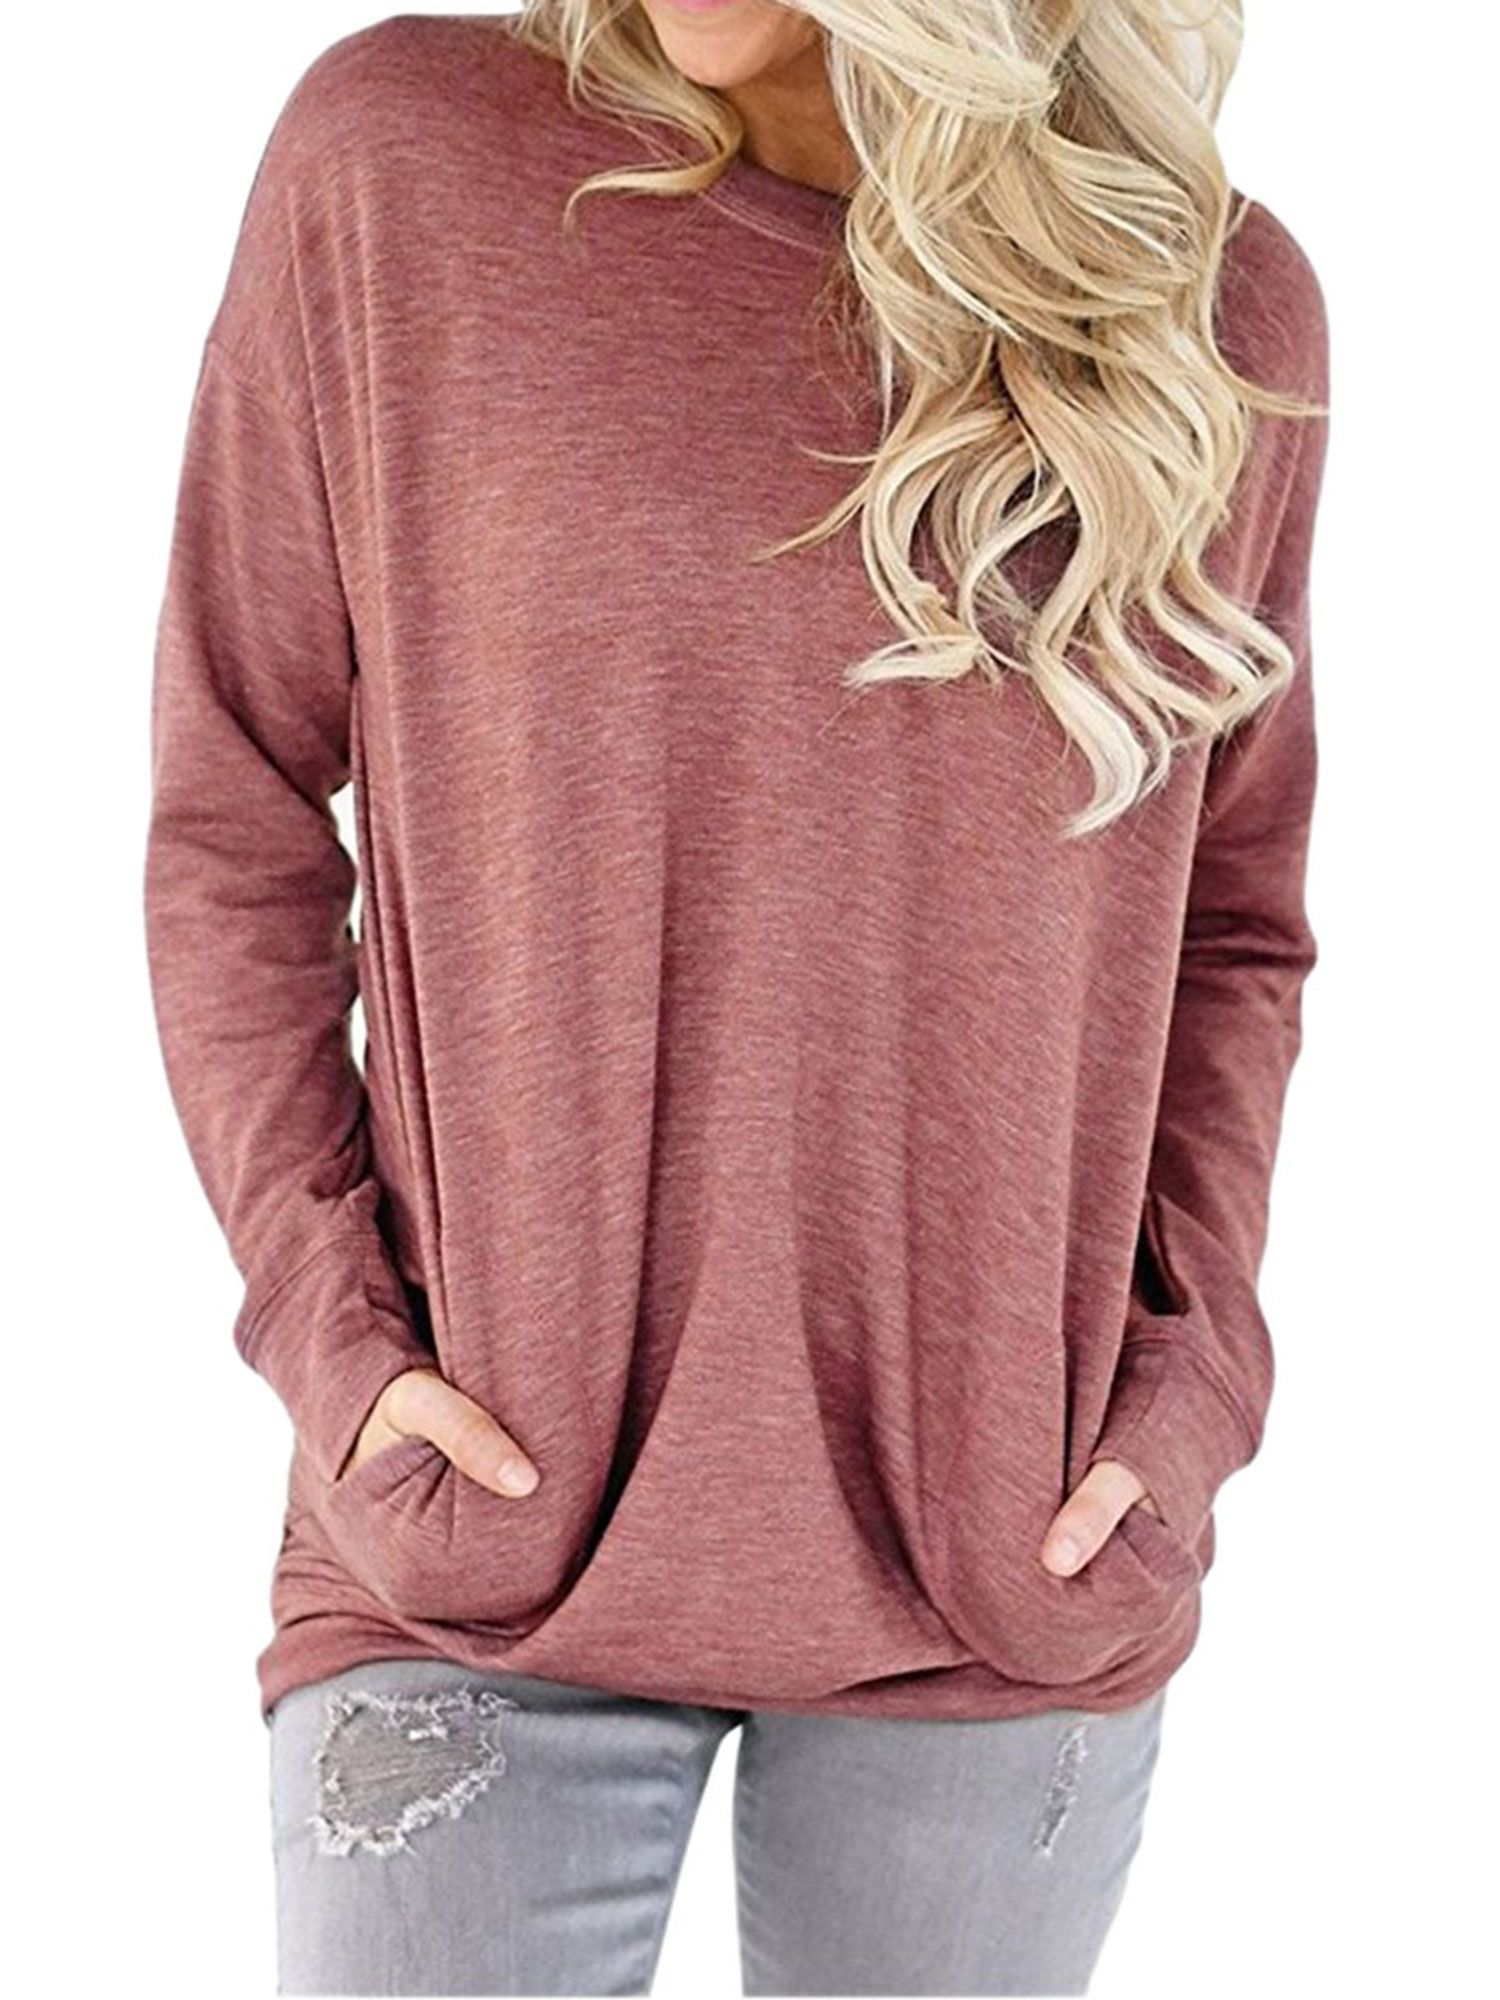 Women Long Sleeve High Neck Pocket Solid T Shirt Casual Loose Blouse Tunic Tops